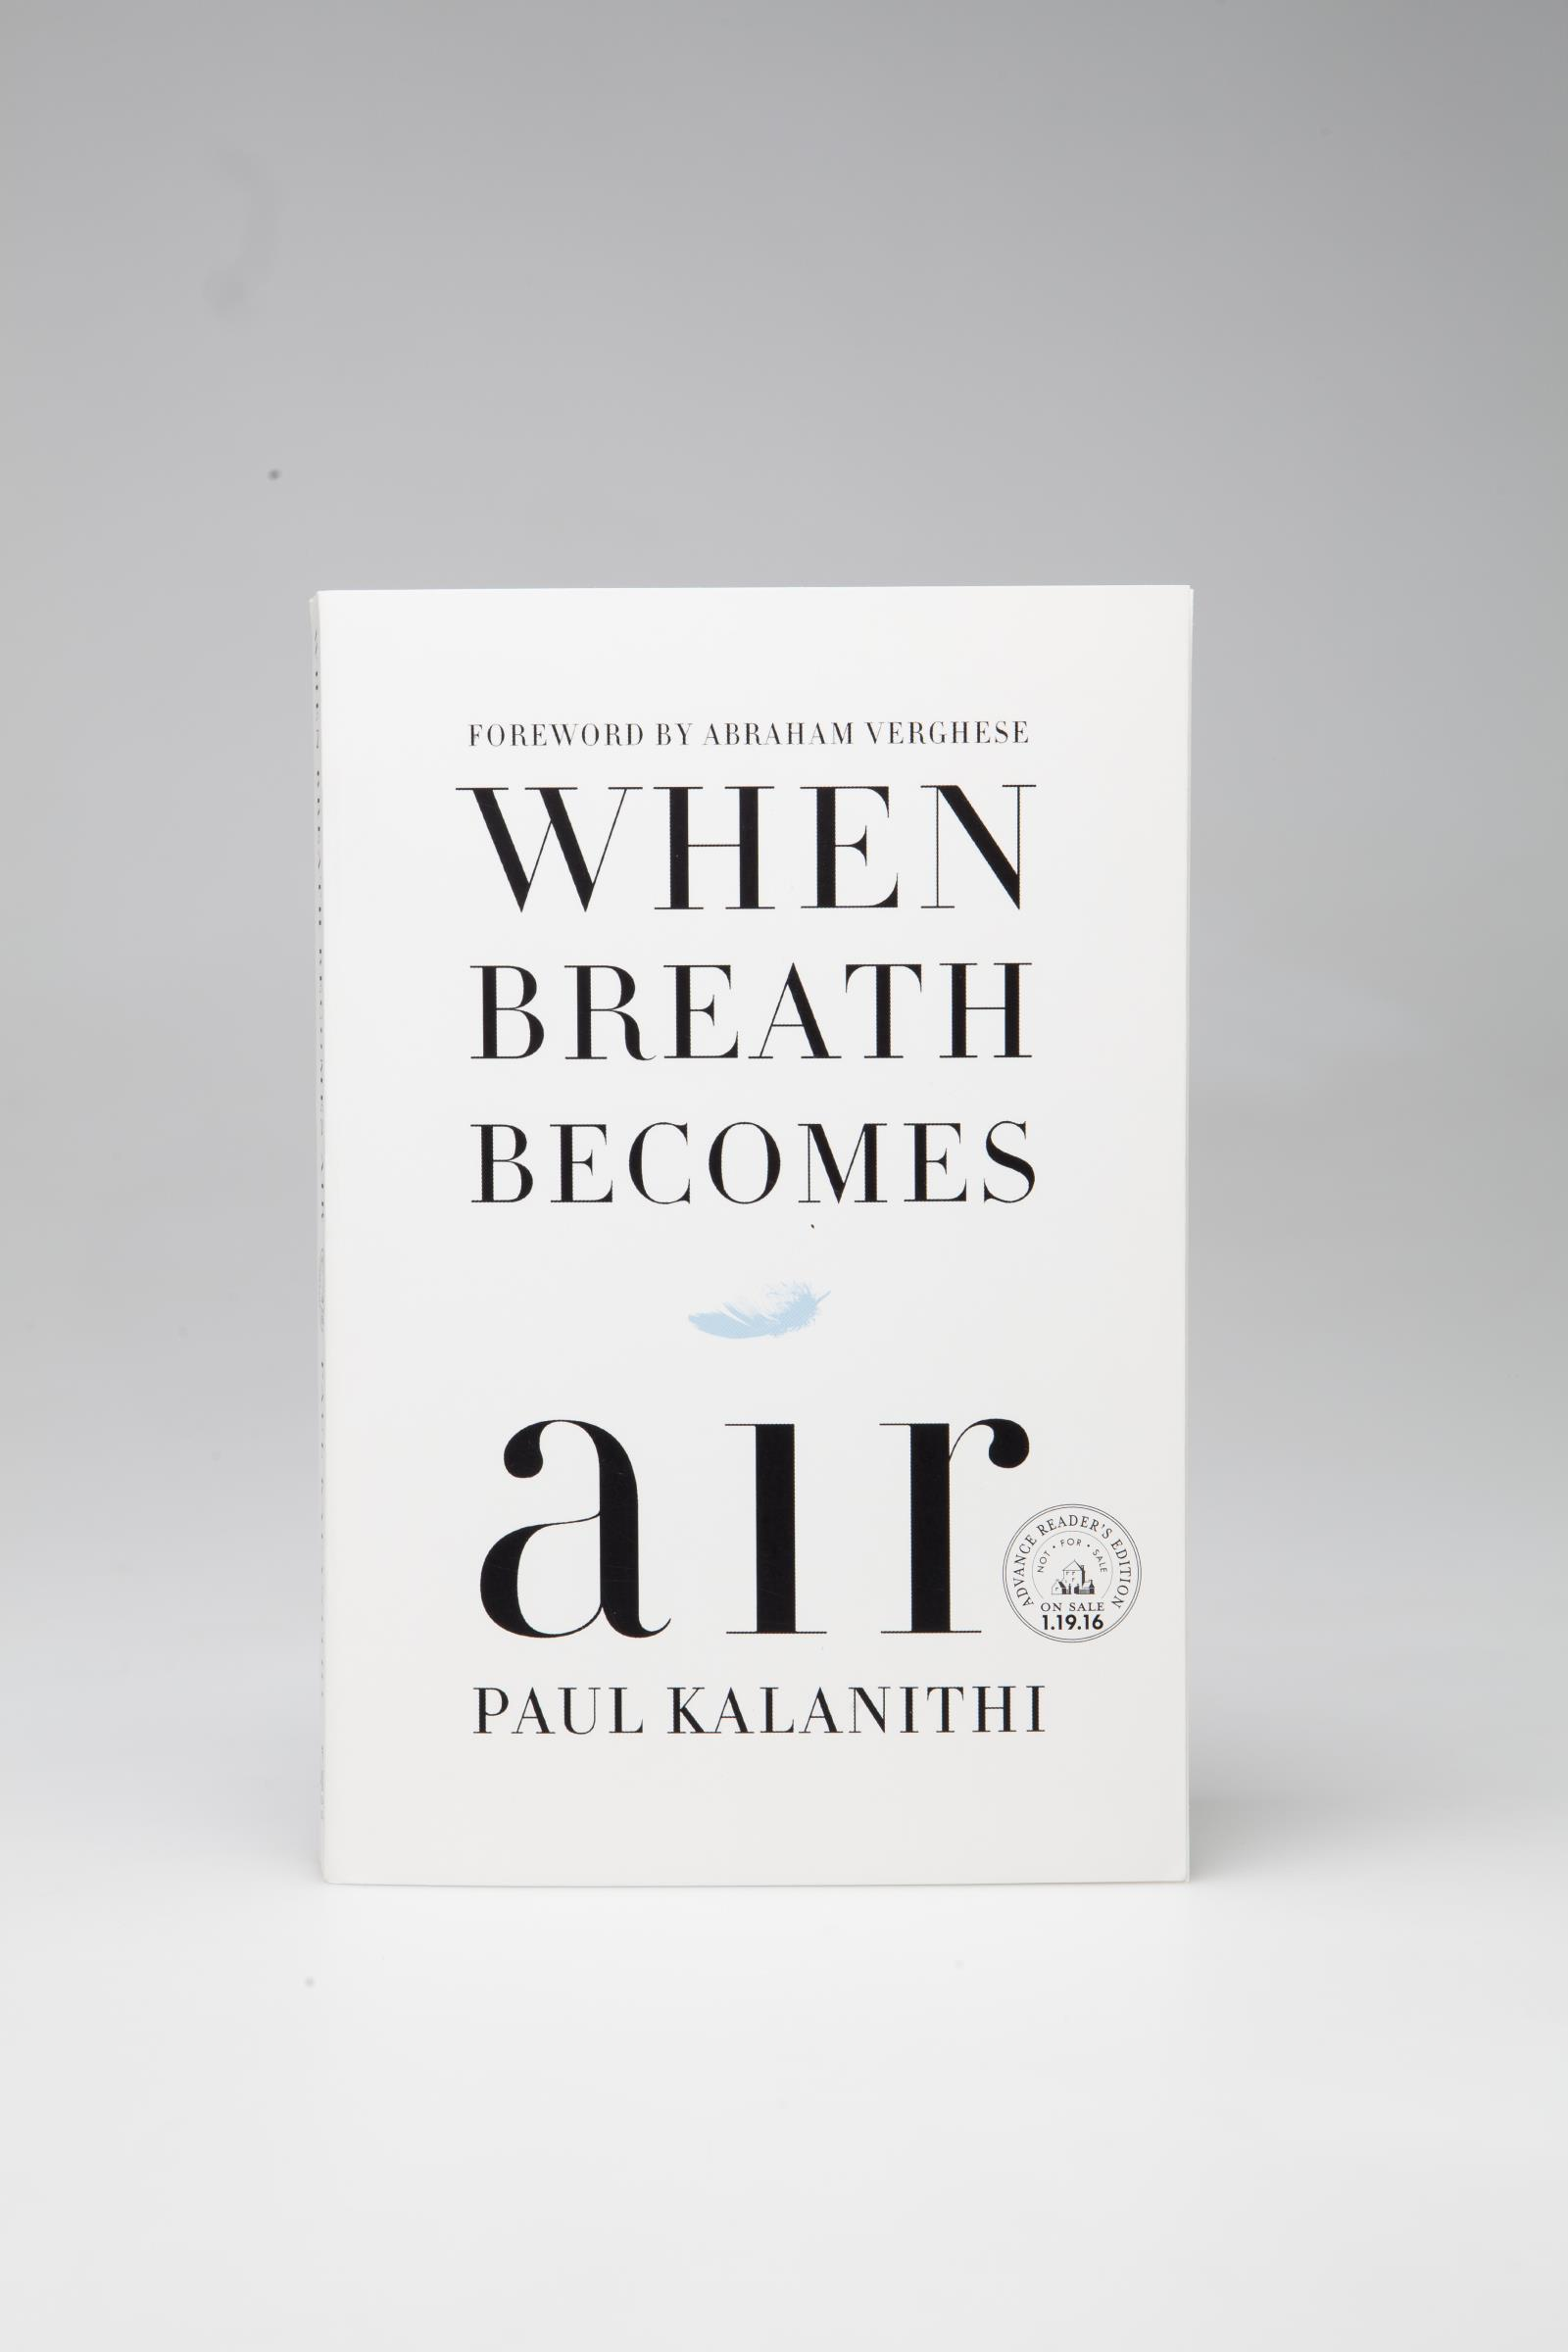 Paul Kalanithi's memoir of his battle with cancer, When Breath Becomes Air, was published in January 2016.